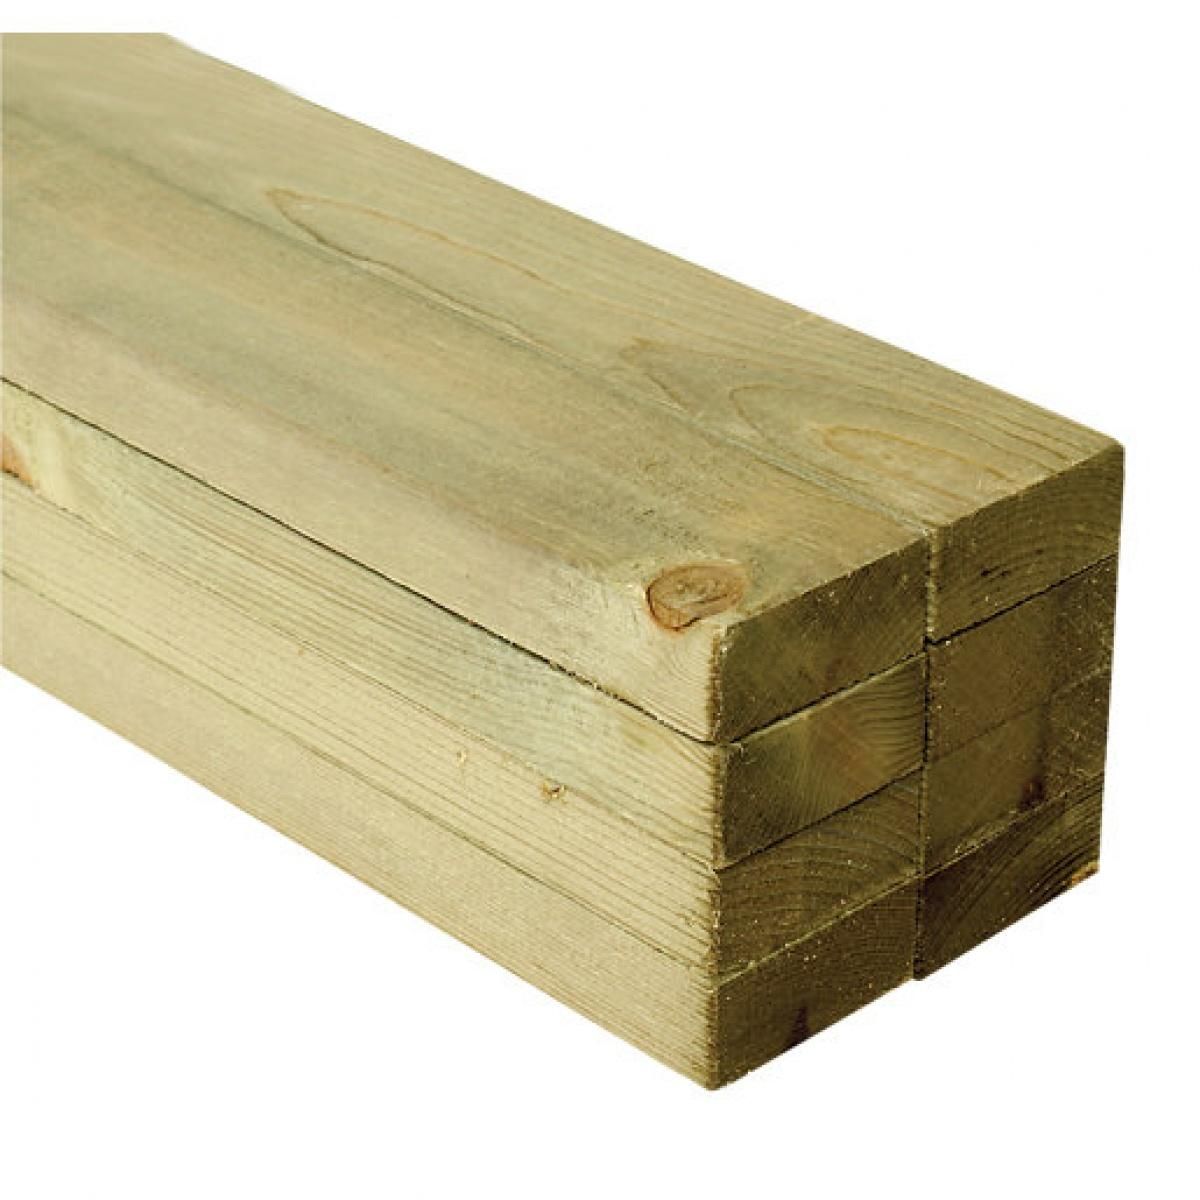 50mm x 75mm UNGRADED TREATED CARCASSING - Nottage Timber Merchants